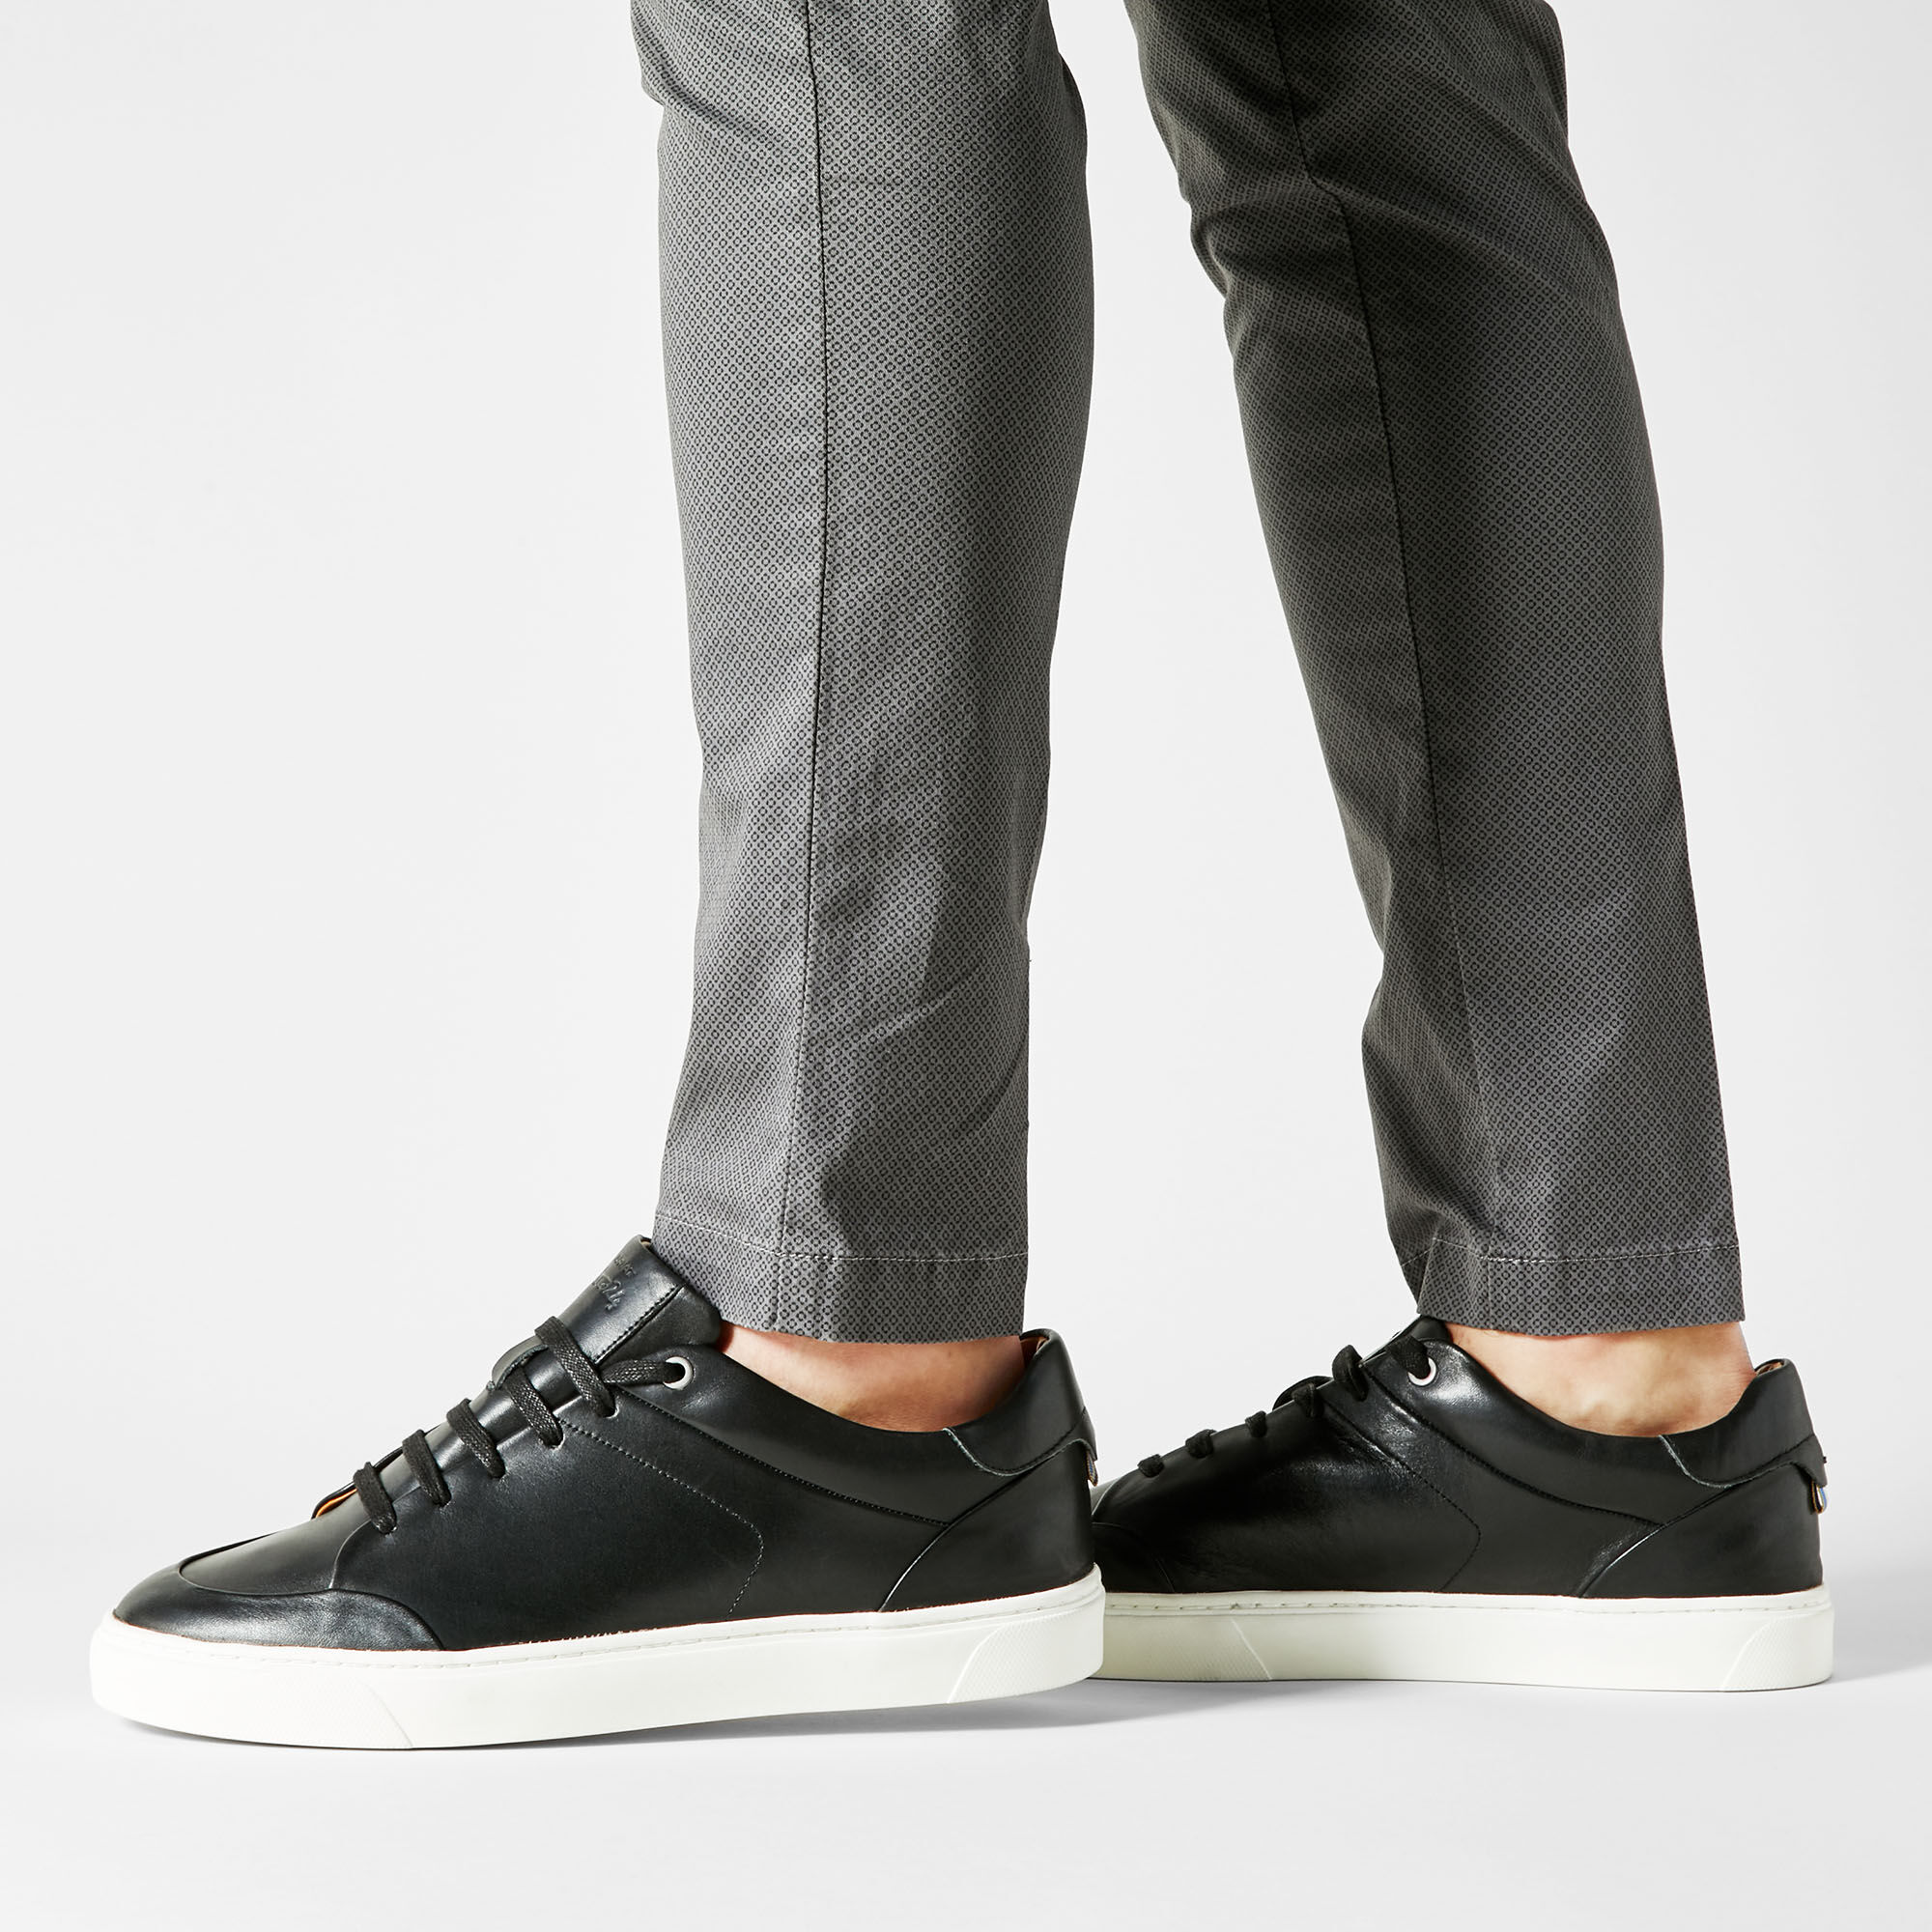 Two24 Men's Jack Shoes in Black Leather